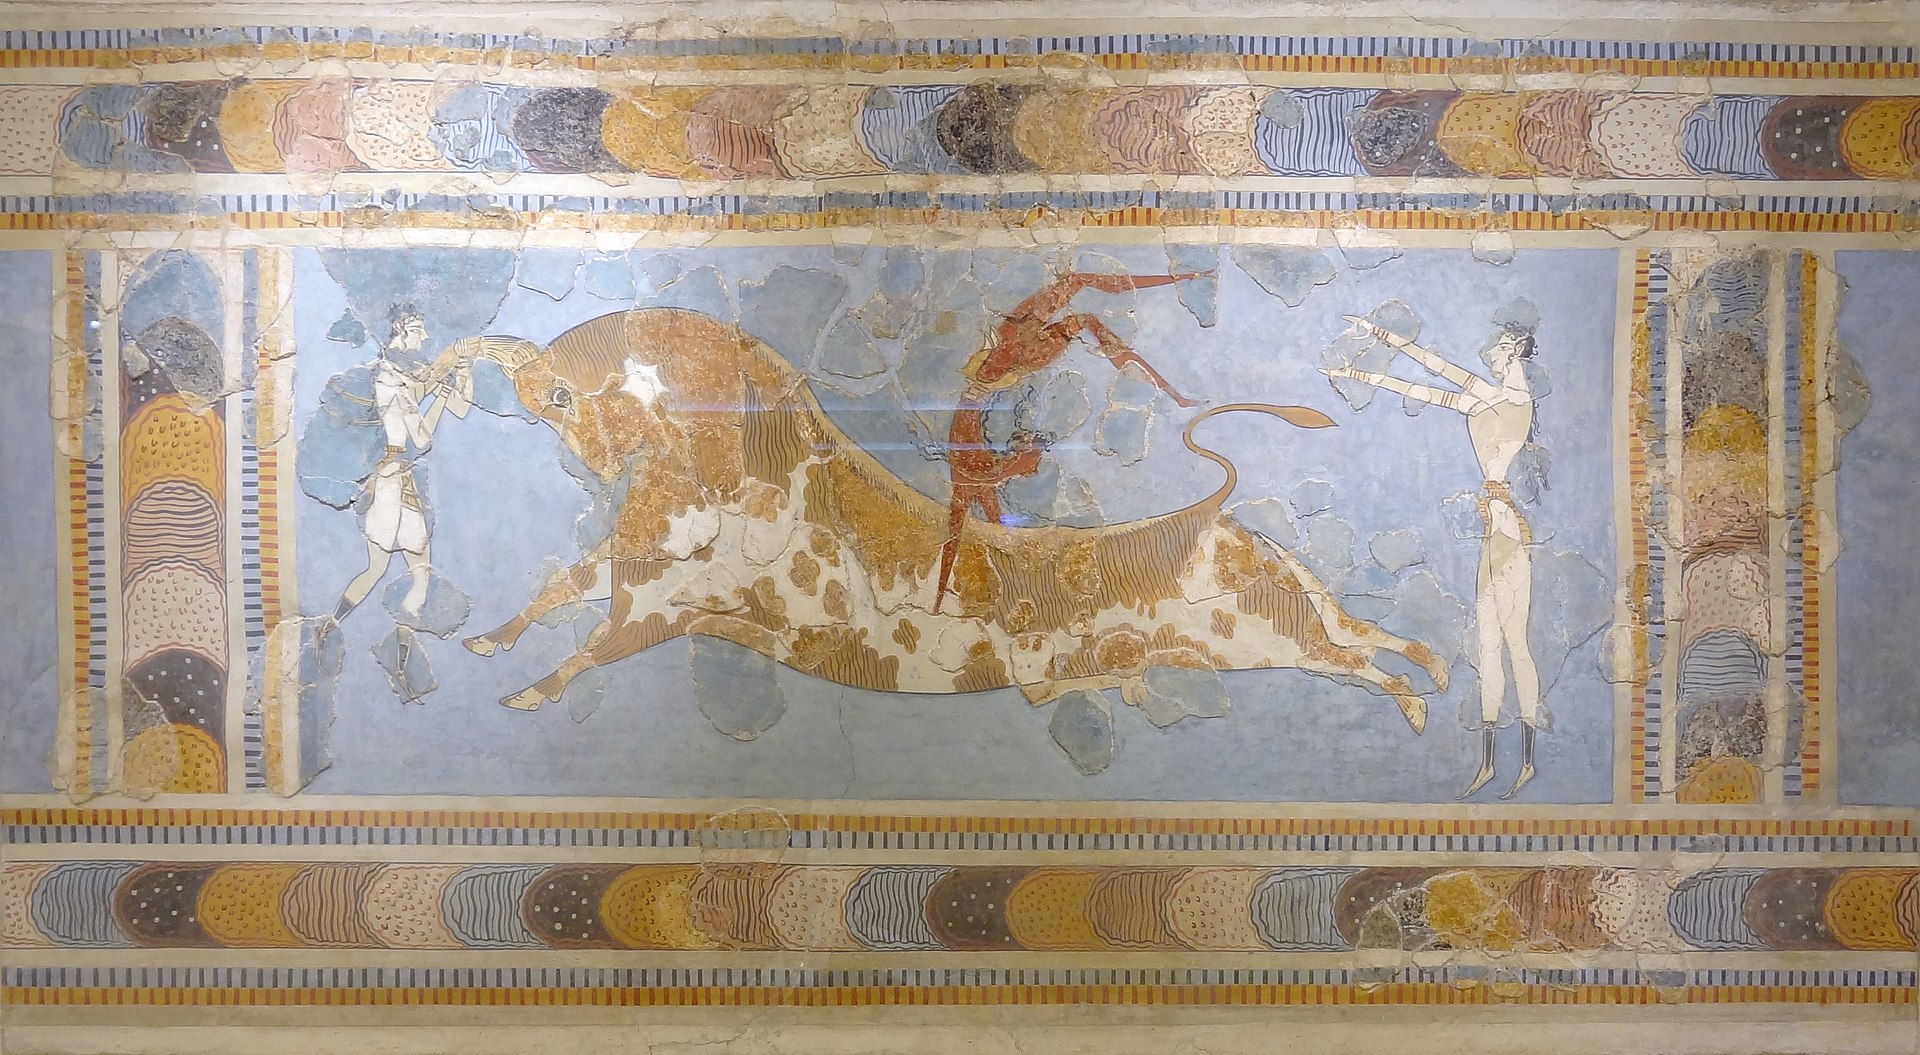 Bull Leaping Fresco, c.1450 BCE, Knossos, Crete, Greece.